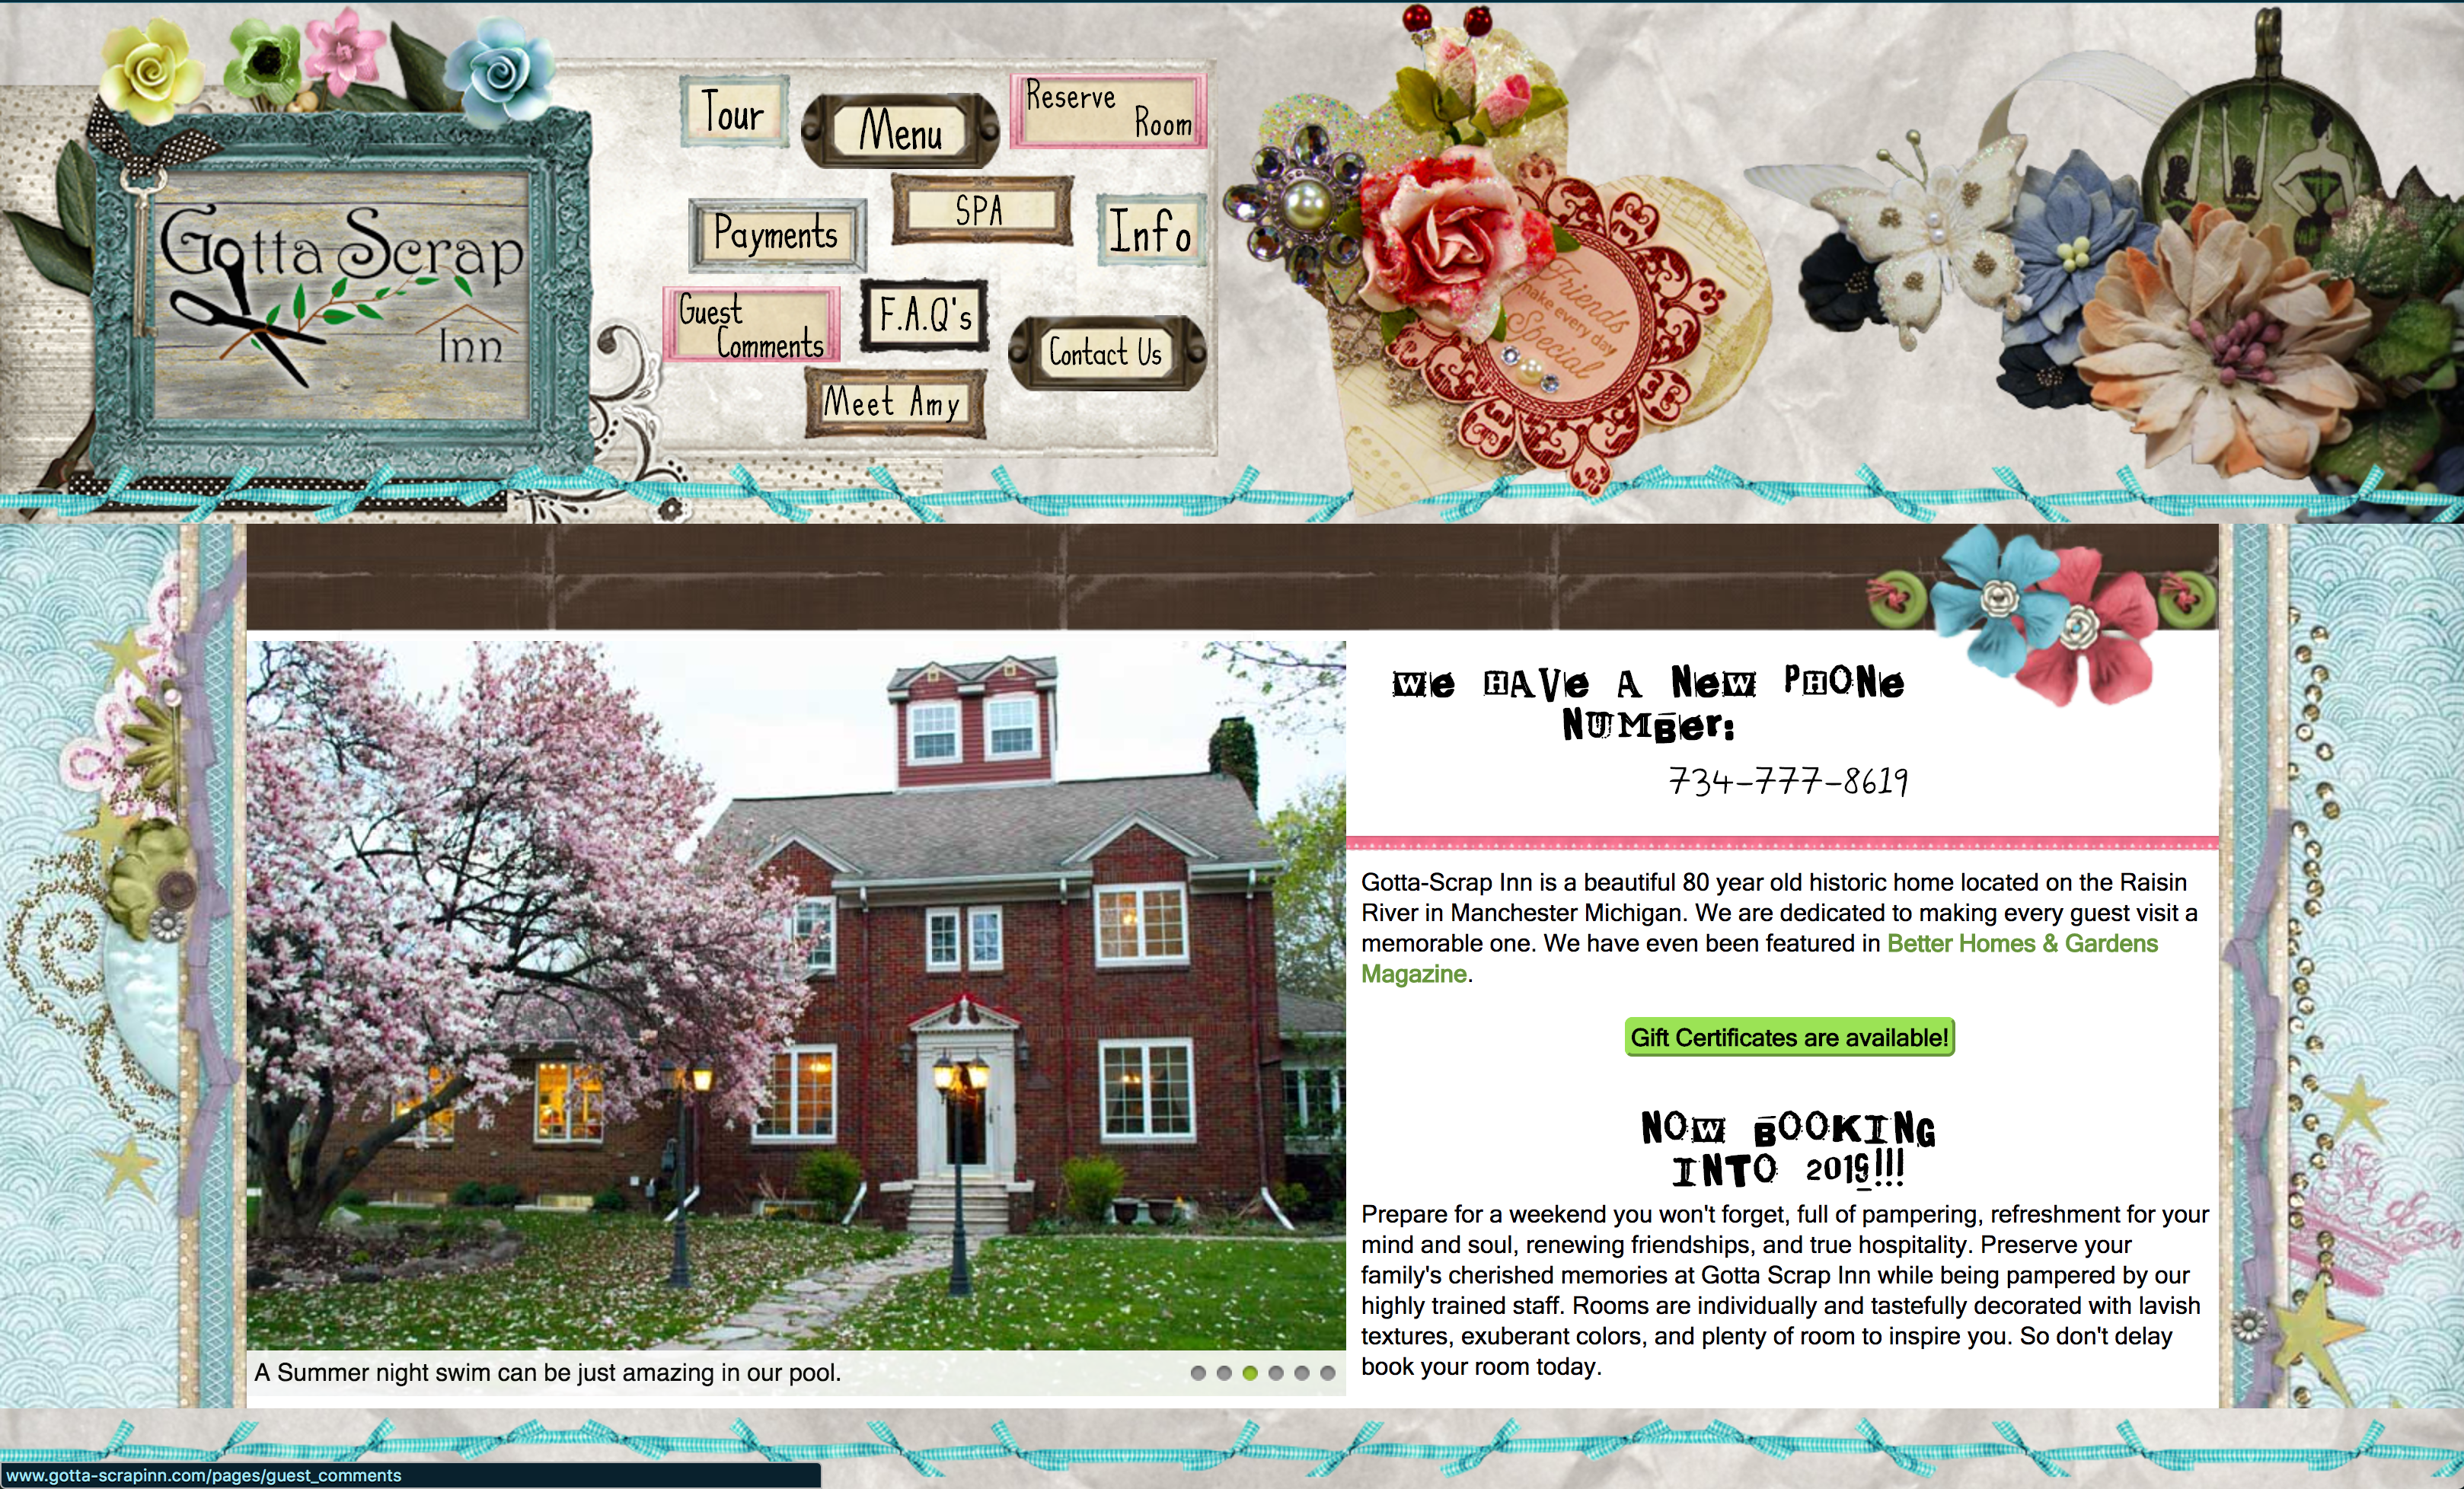 Gotta Scrap Inn is custom website with several custom User Interface(UI) features.